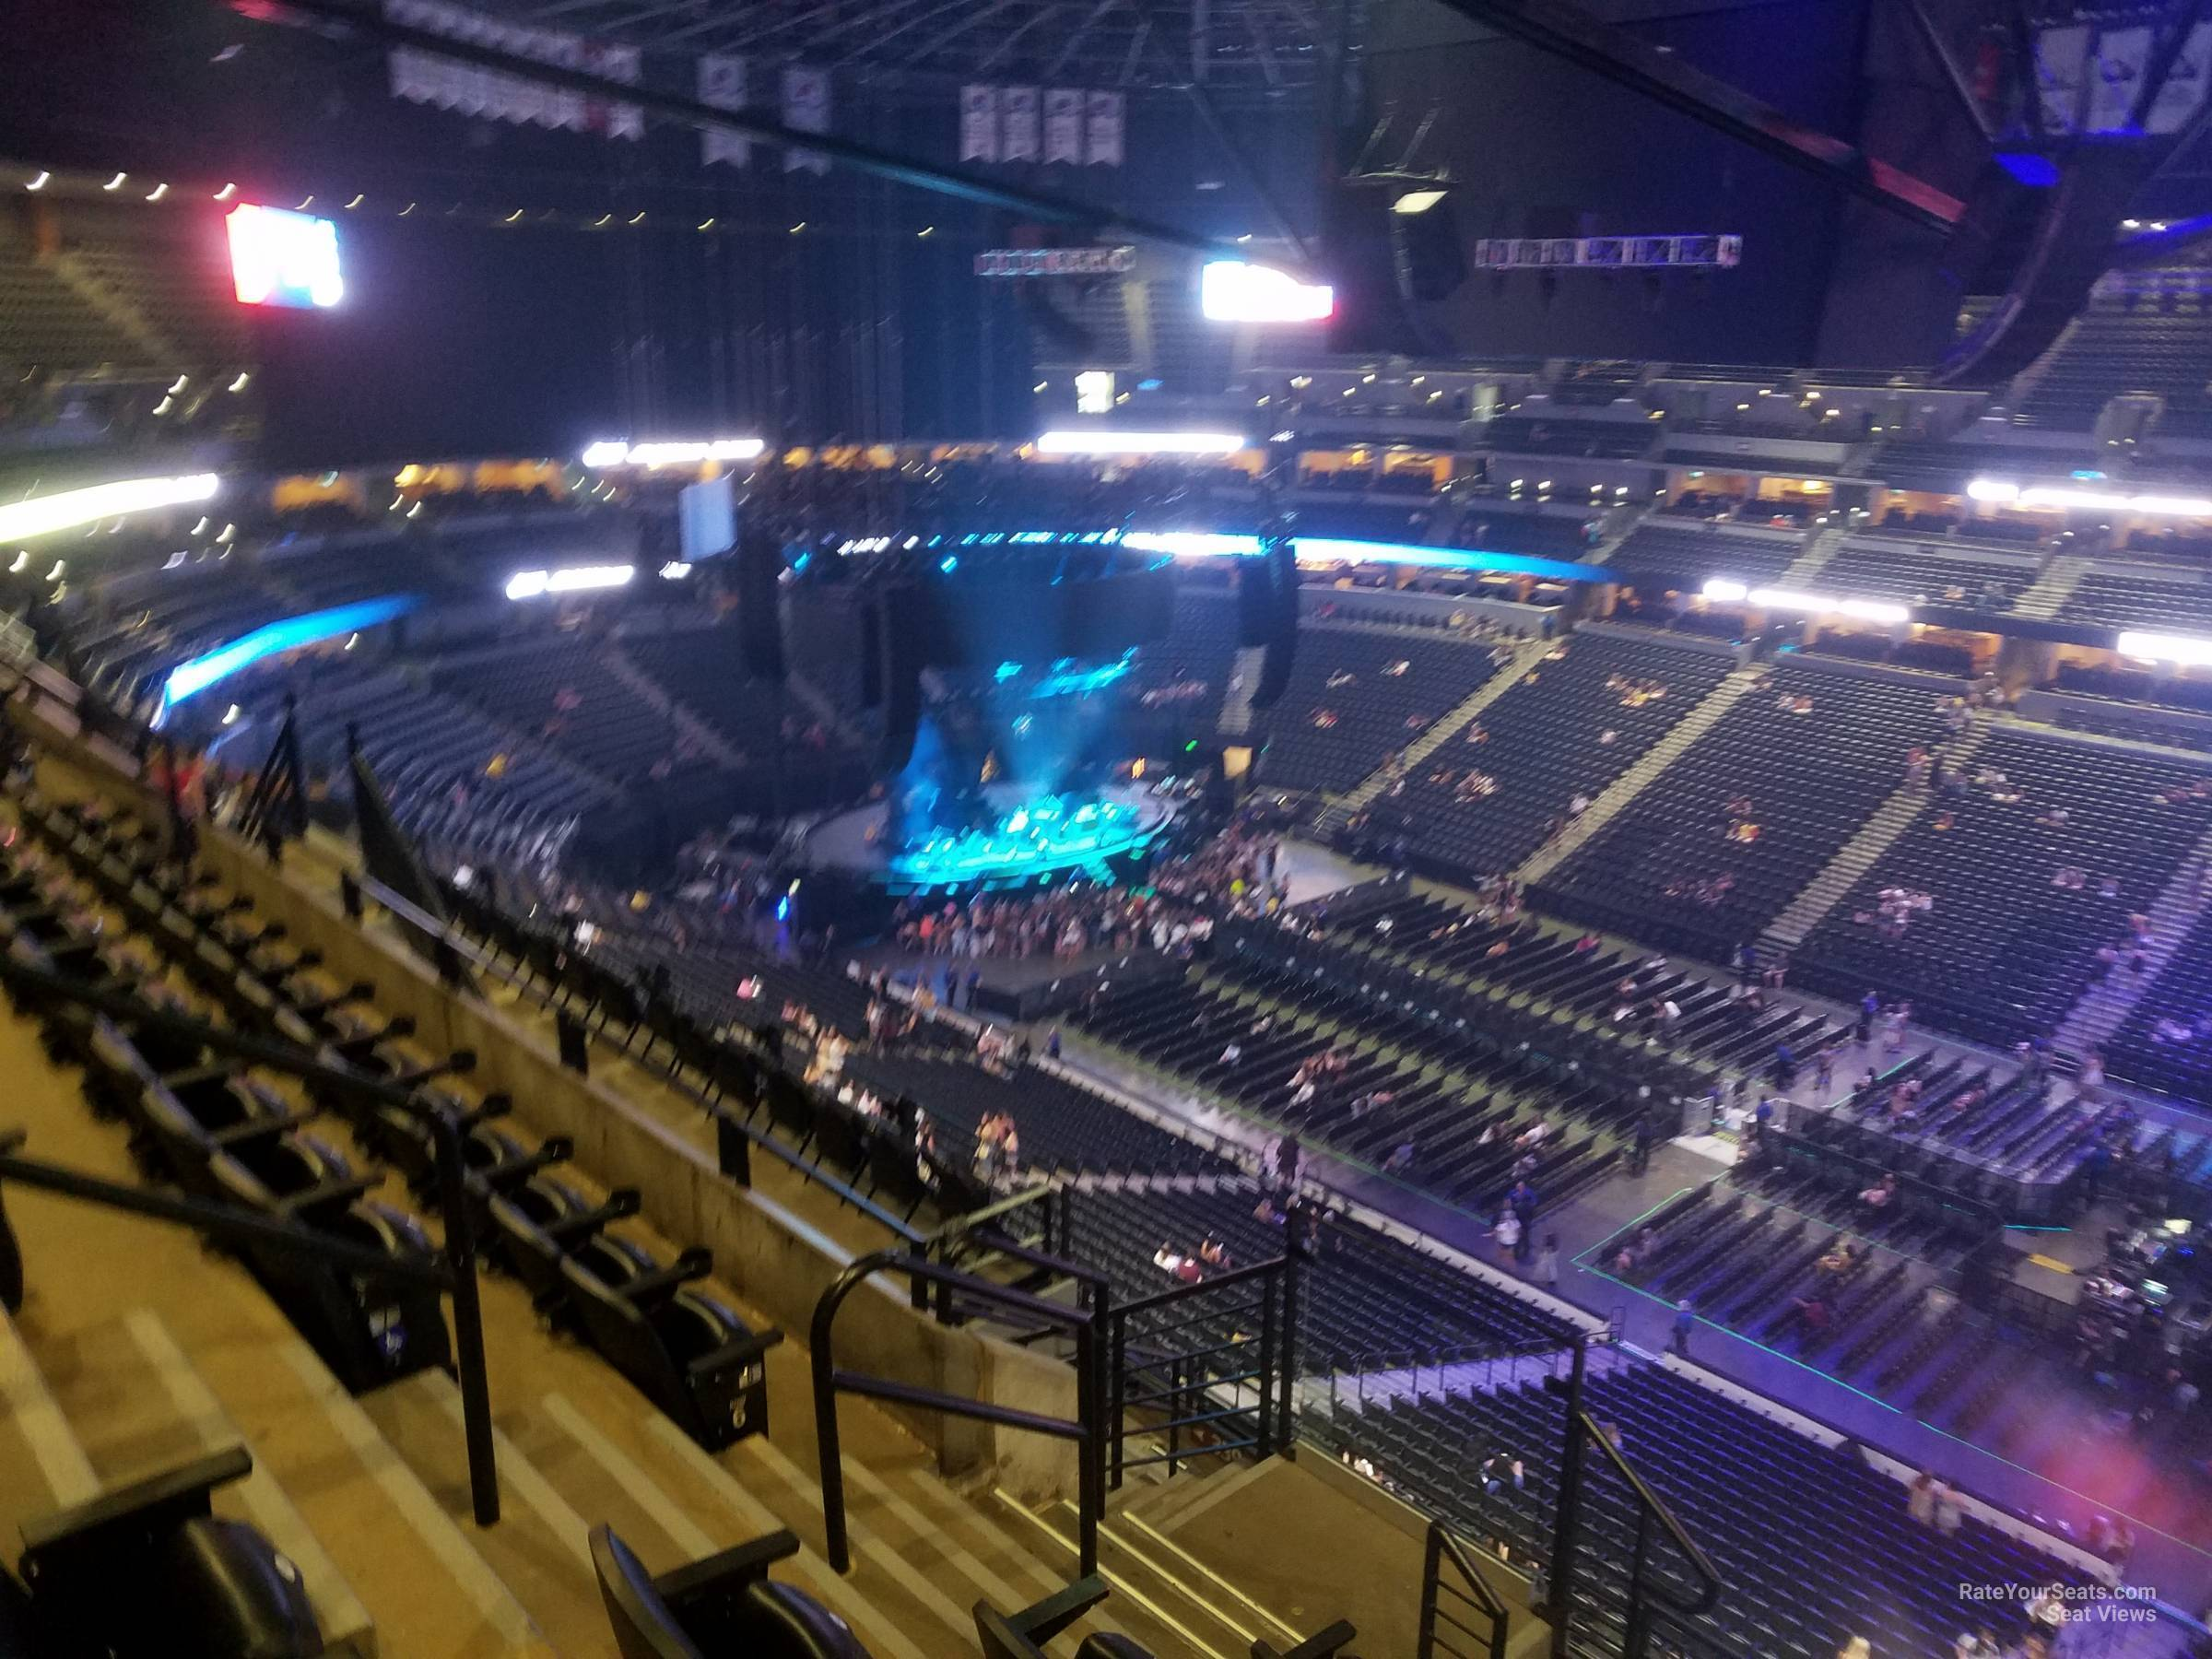 Section 336 At Pepsi Center For Concerts Rateyourseats Com